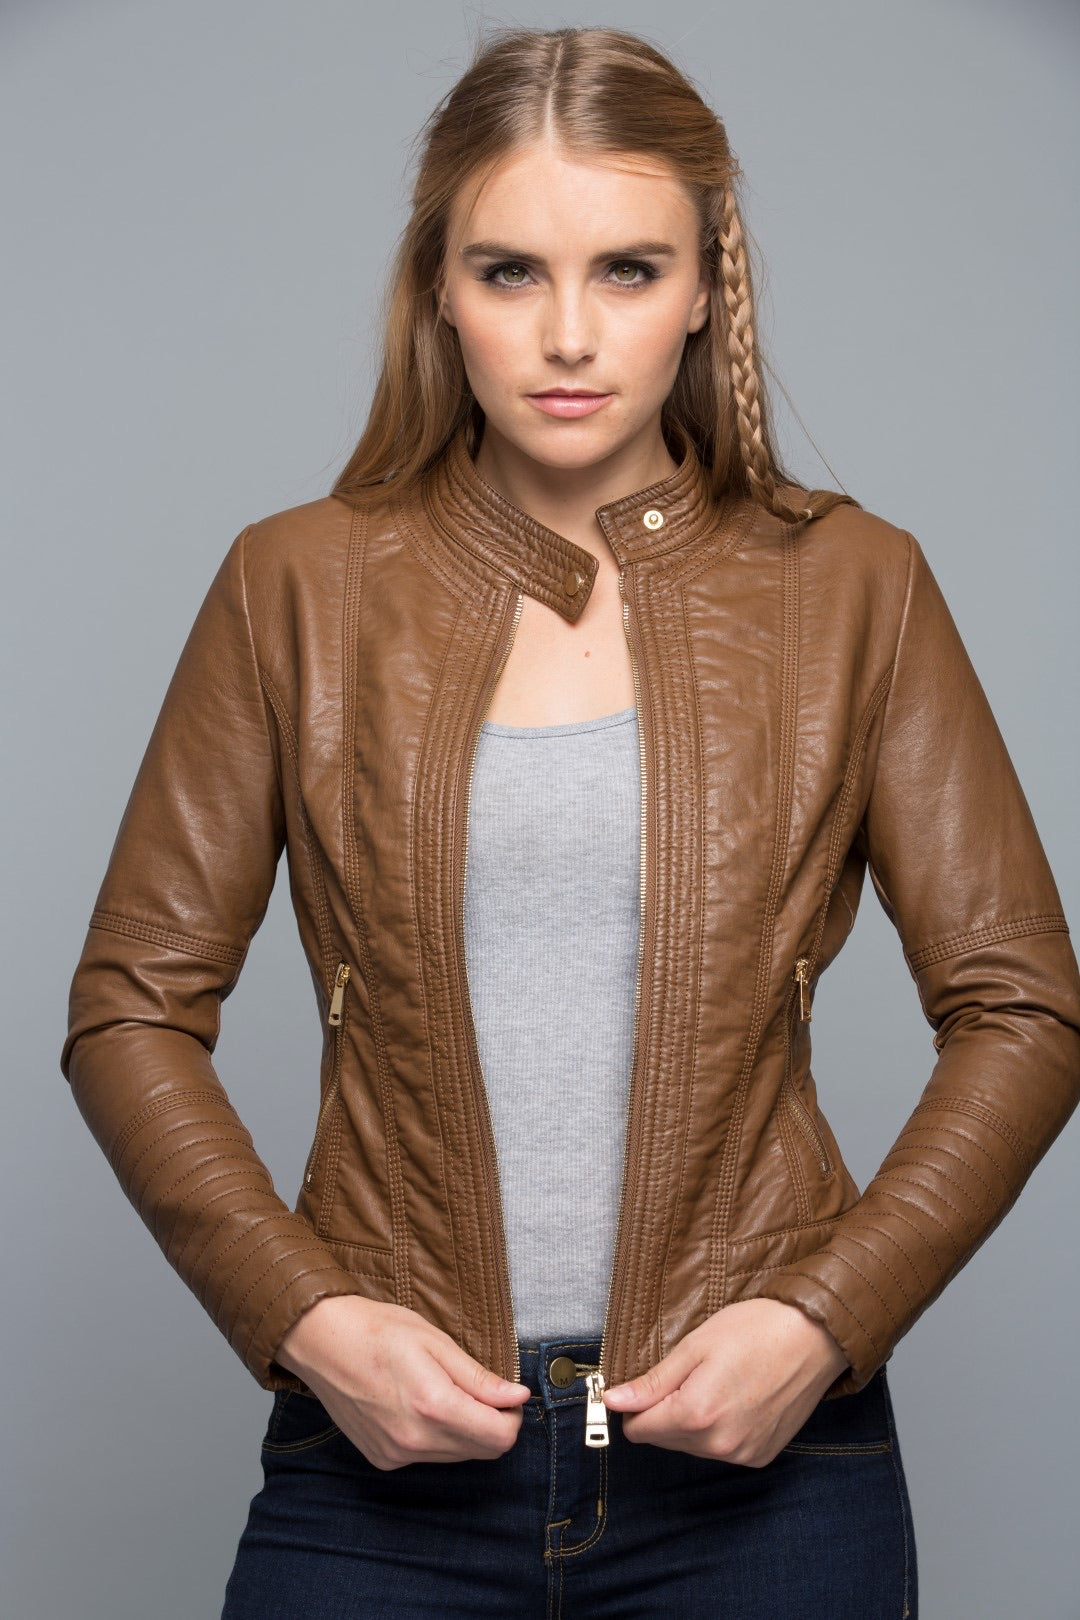 Cognac Vegan Leather Jacket